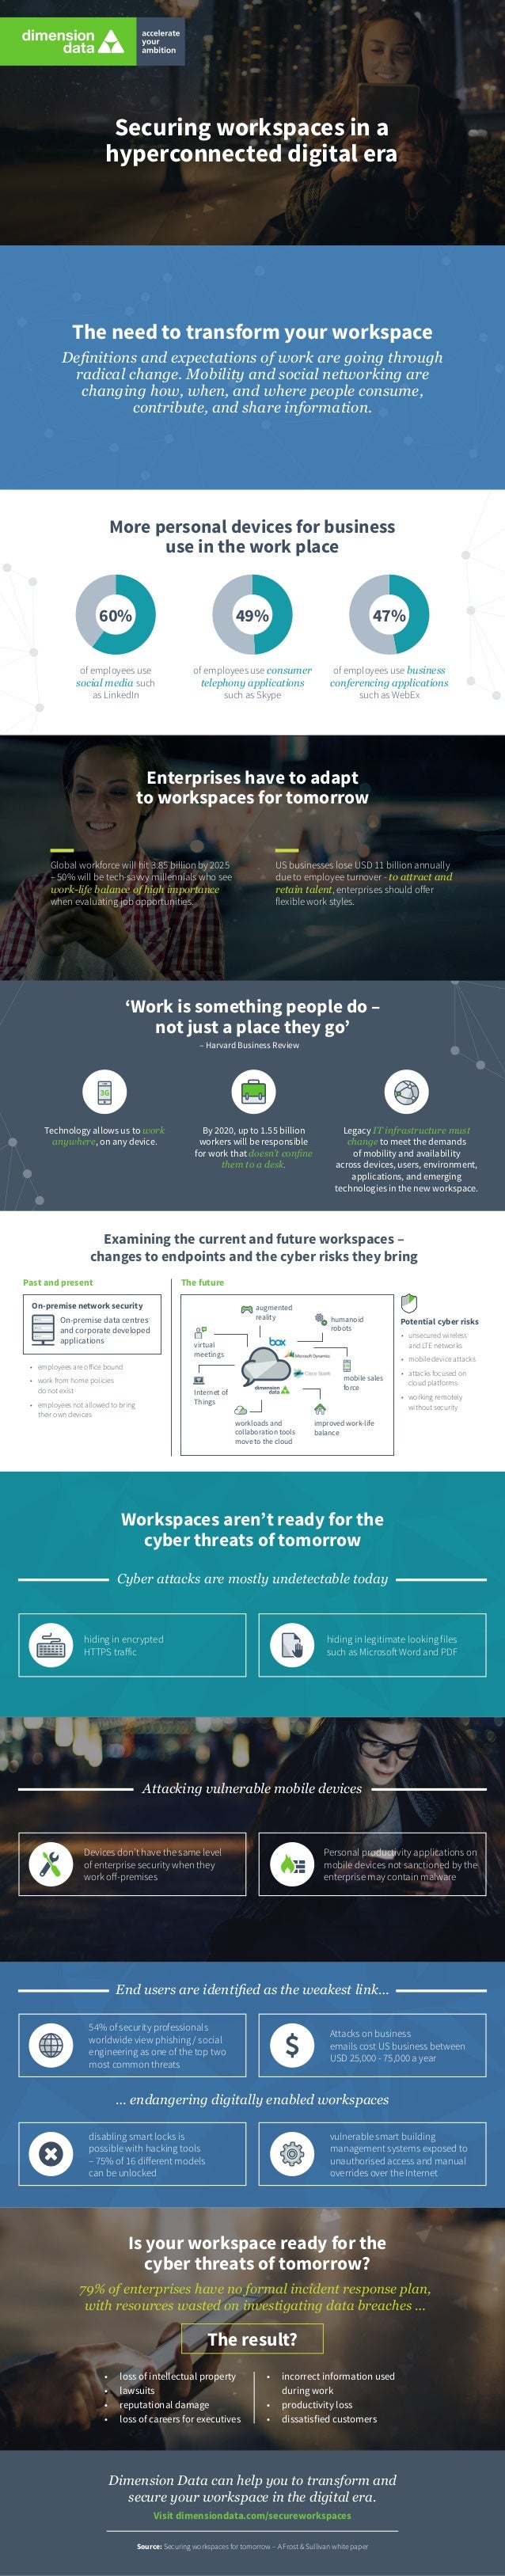 Enterprises have to adapt to workspaces for tomorrow Global workforce will hit 3.85 billion by 2025 – 50% will be tech-sav...